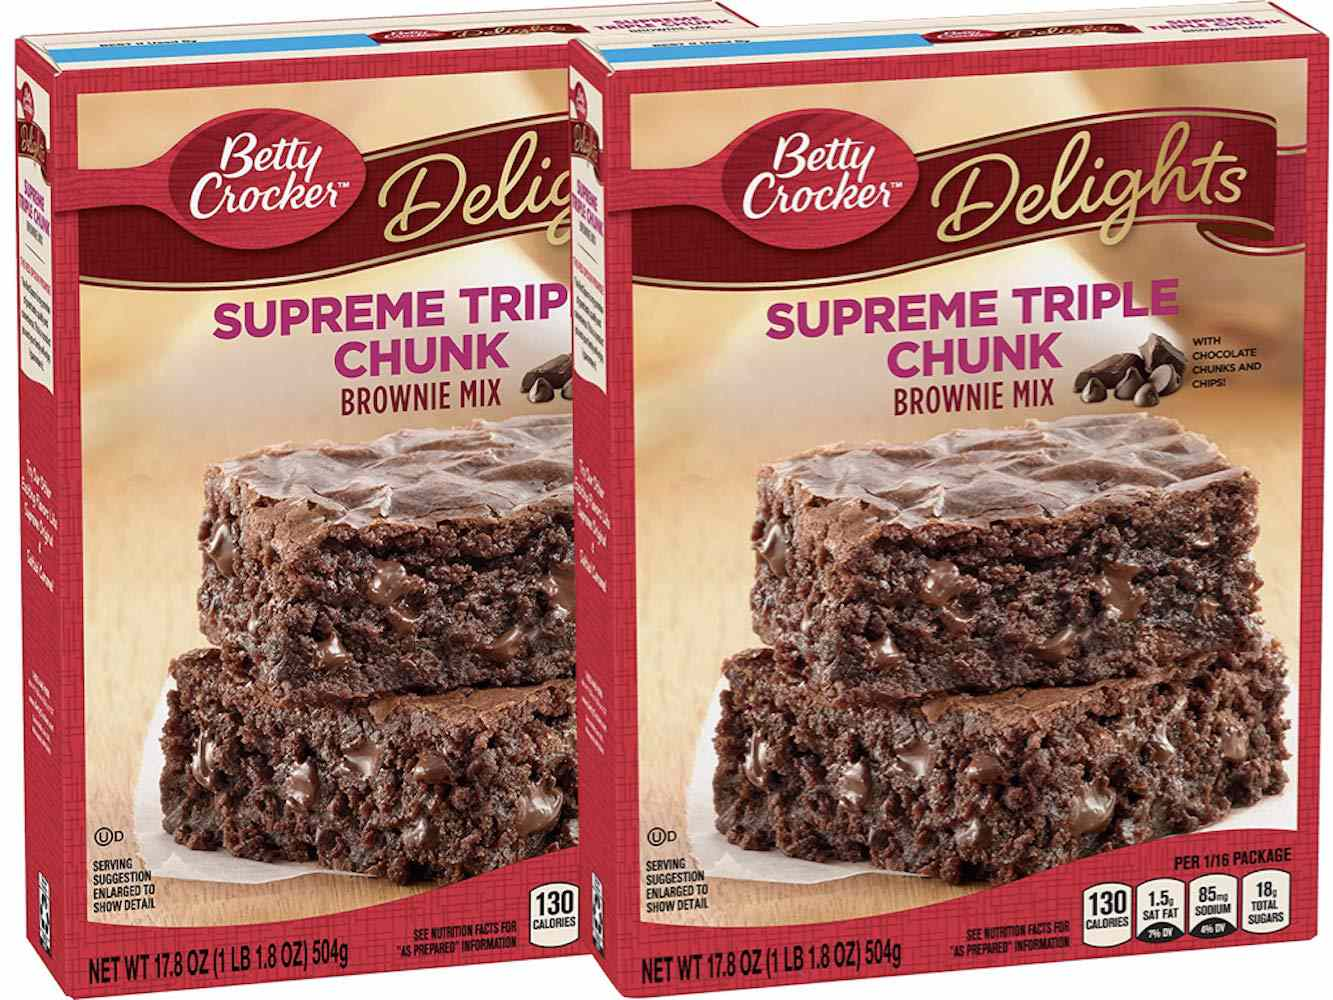 Betty Crocker Delights Triple Chunk Supreme Brownie Mix (Two-Pack)